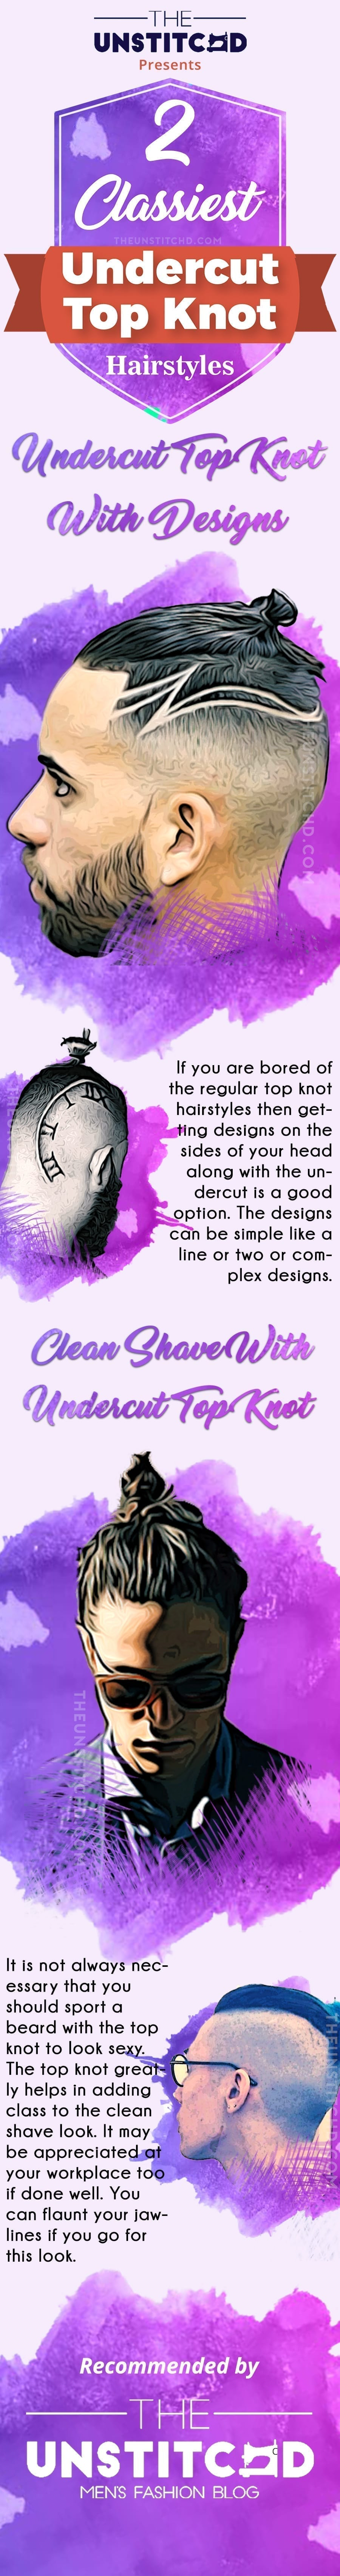 undercut-top-knot-info